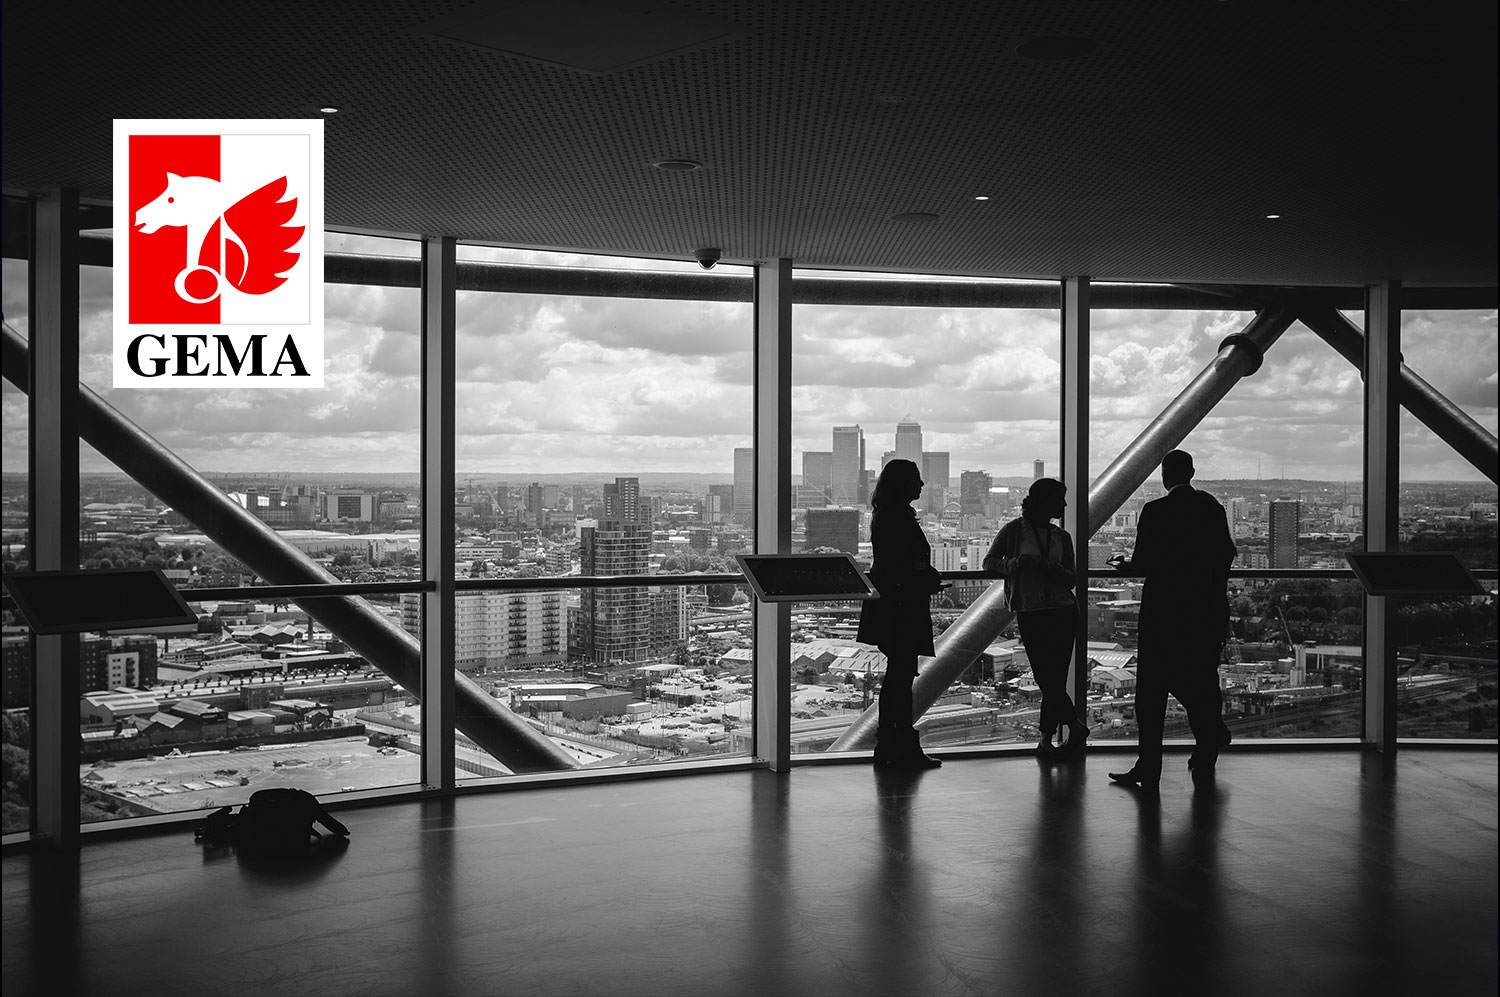 Contribution image in black and white with GEMA logo on it. Shows an empty office with people standing at a glass facade.